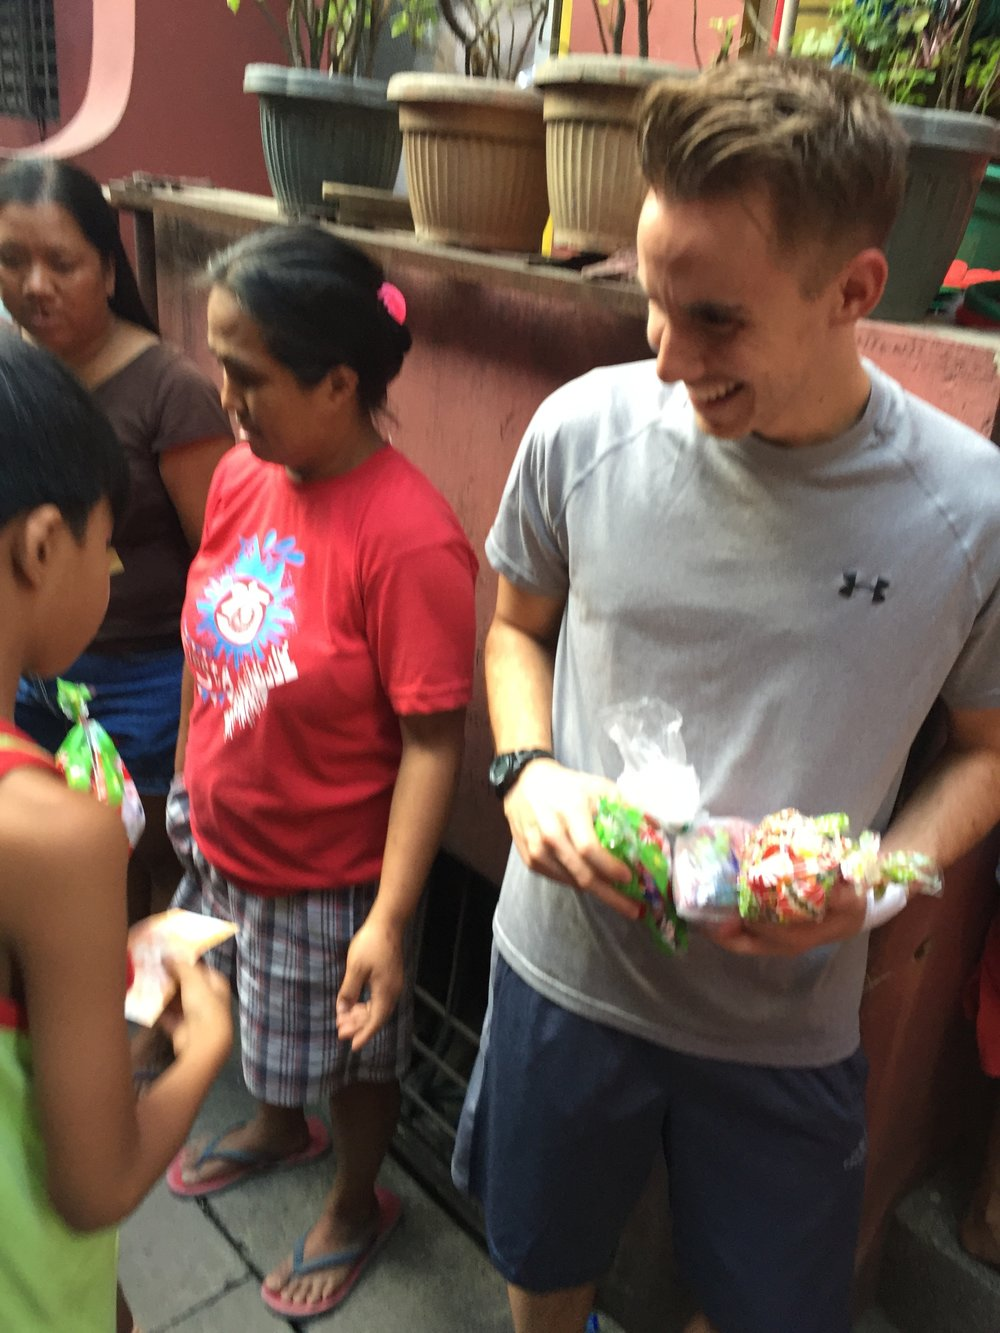 Volunteers making children smile by sharing Christmas candy.